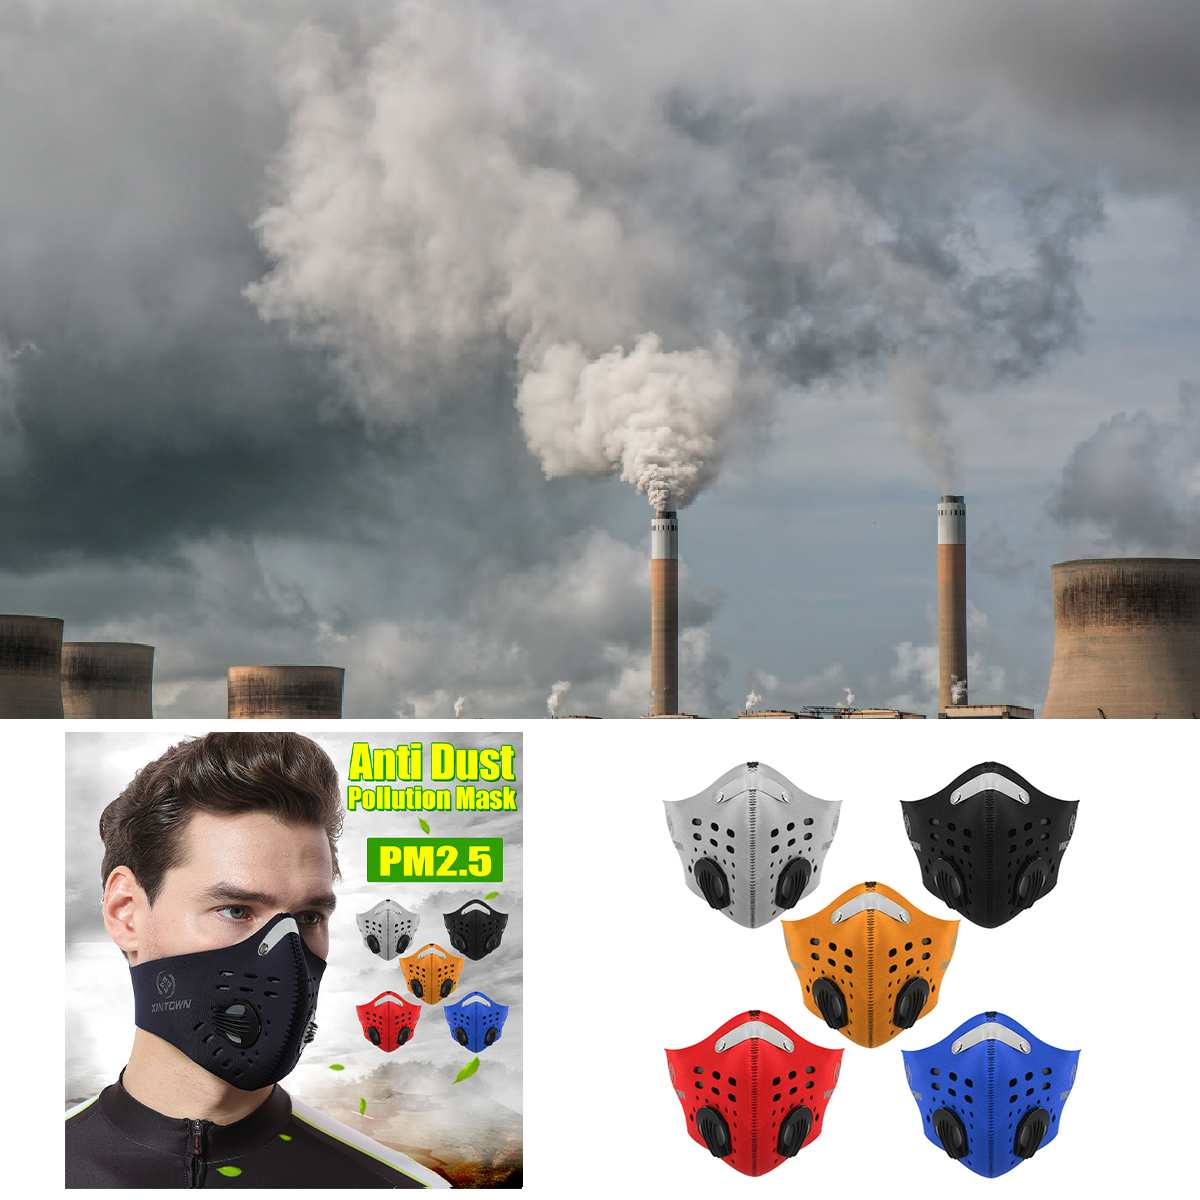 10Pcs Anti Pollution PM2.5 Mouth Mask Anti Dust Respirator Reusable Masks  Nylon Unisex Mouth Mask for Sports/Travel/Cycling 1